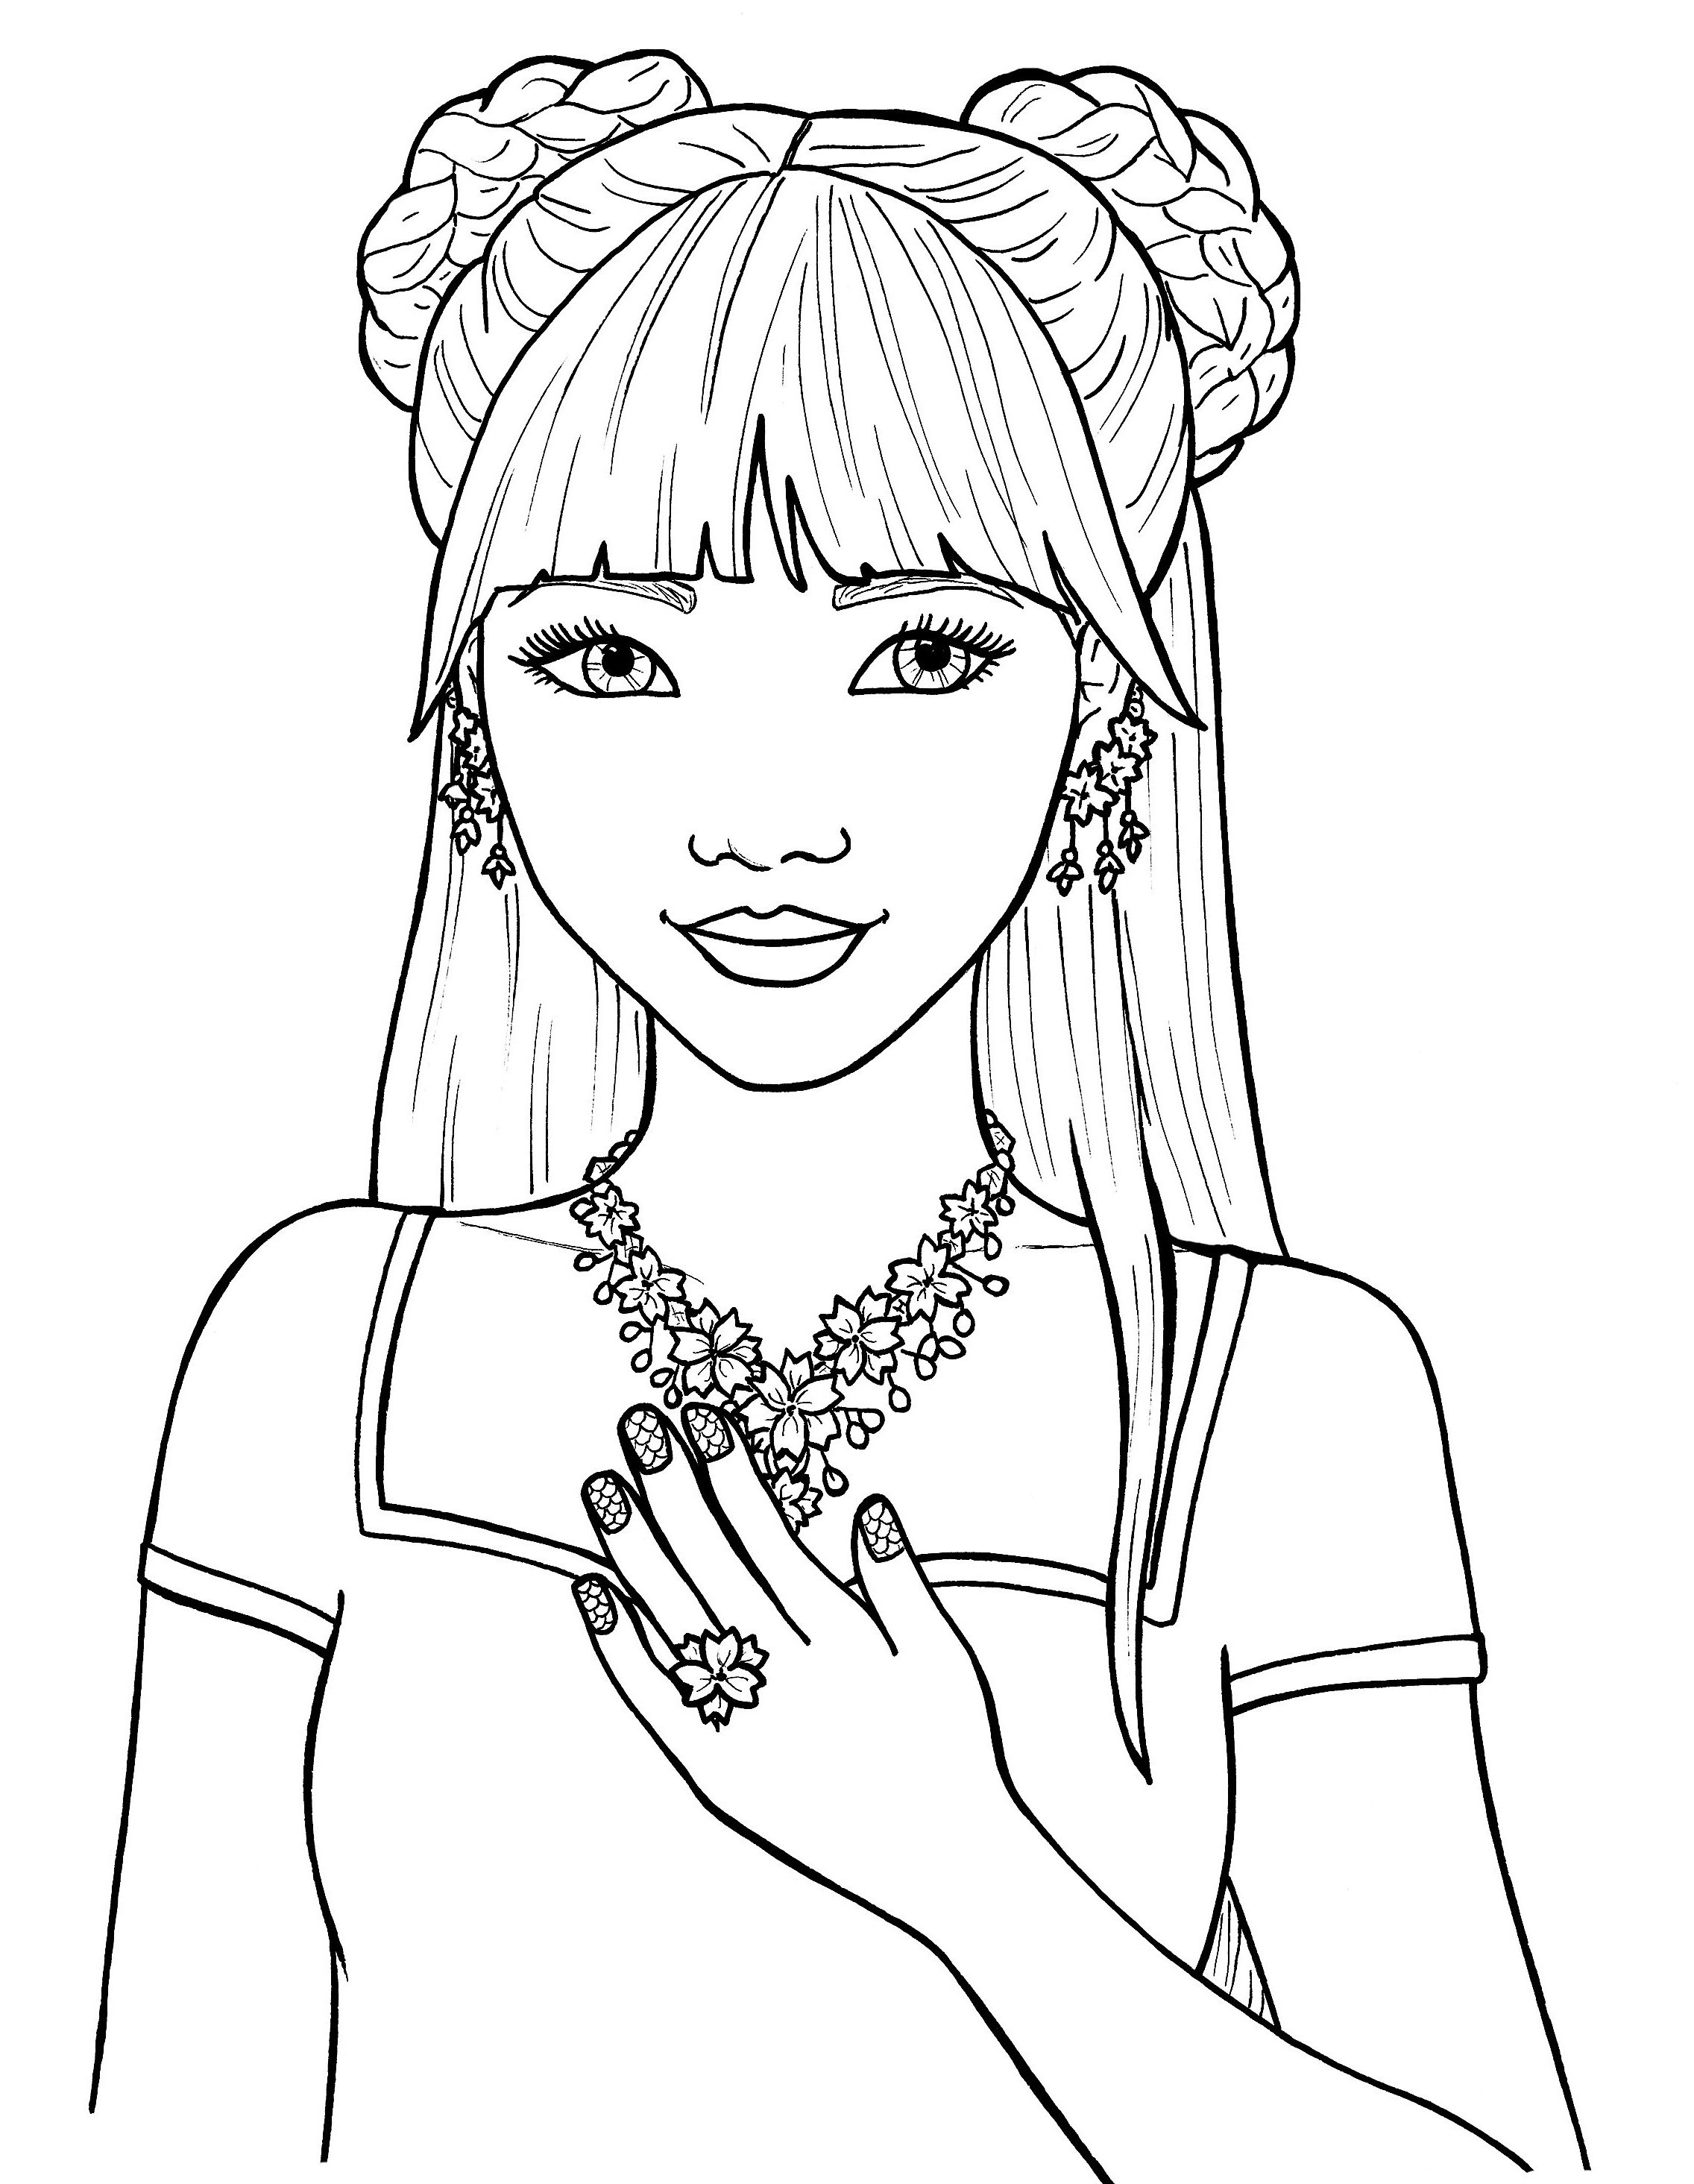 coloring pages for tweens the best coloring pages for girl tweens home inspiration for pages coloring tweens